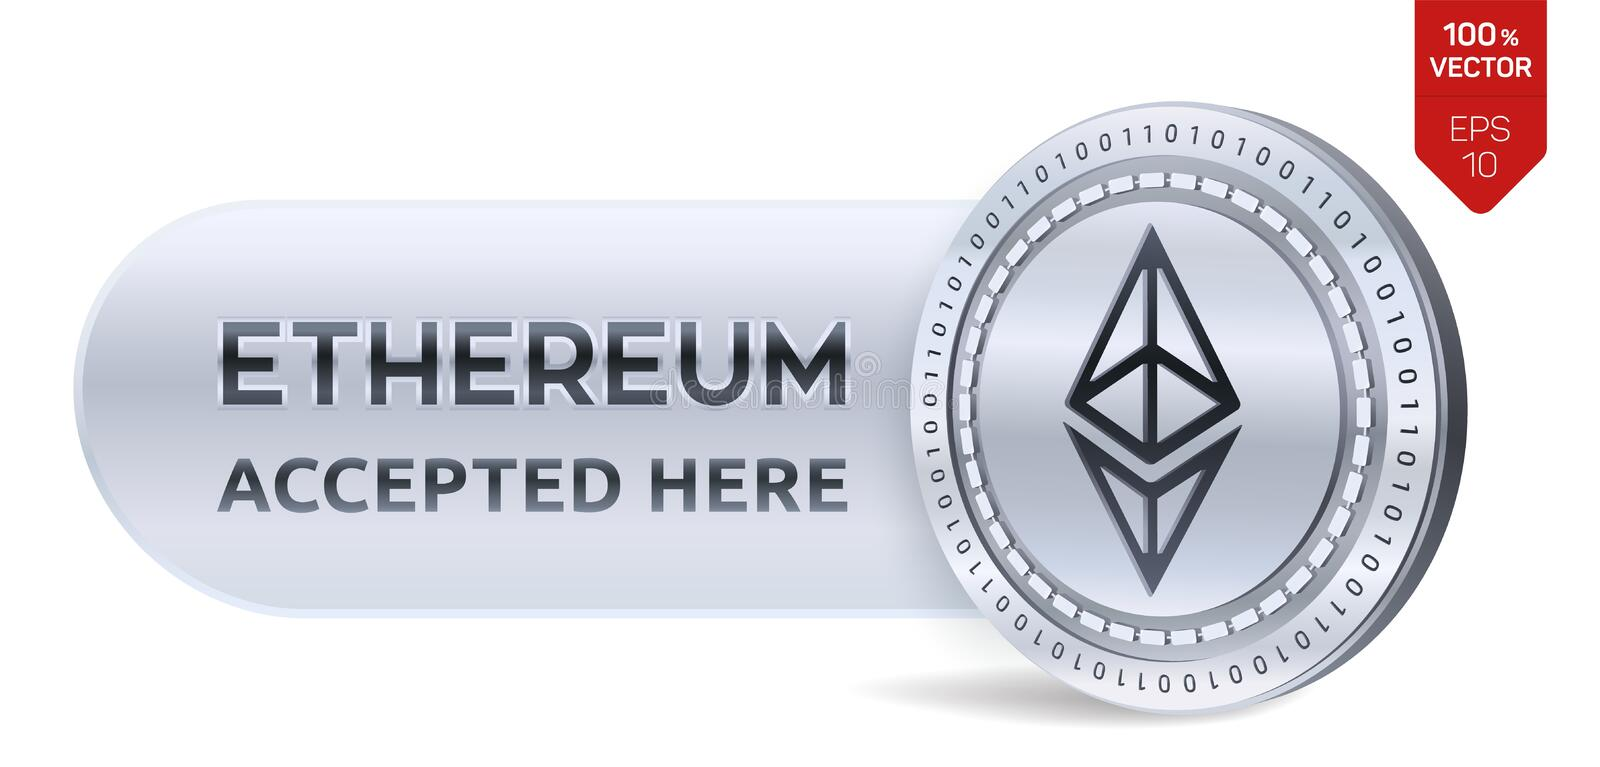 Ethereum accepted sign emblem. 3D isometric Physical coin with frame and text Accepted Here. Cryptocurrency. Silver coin with Ethe royalty free illustration